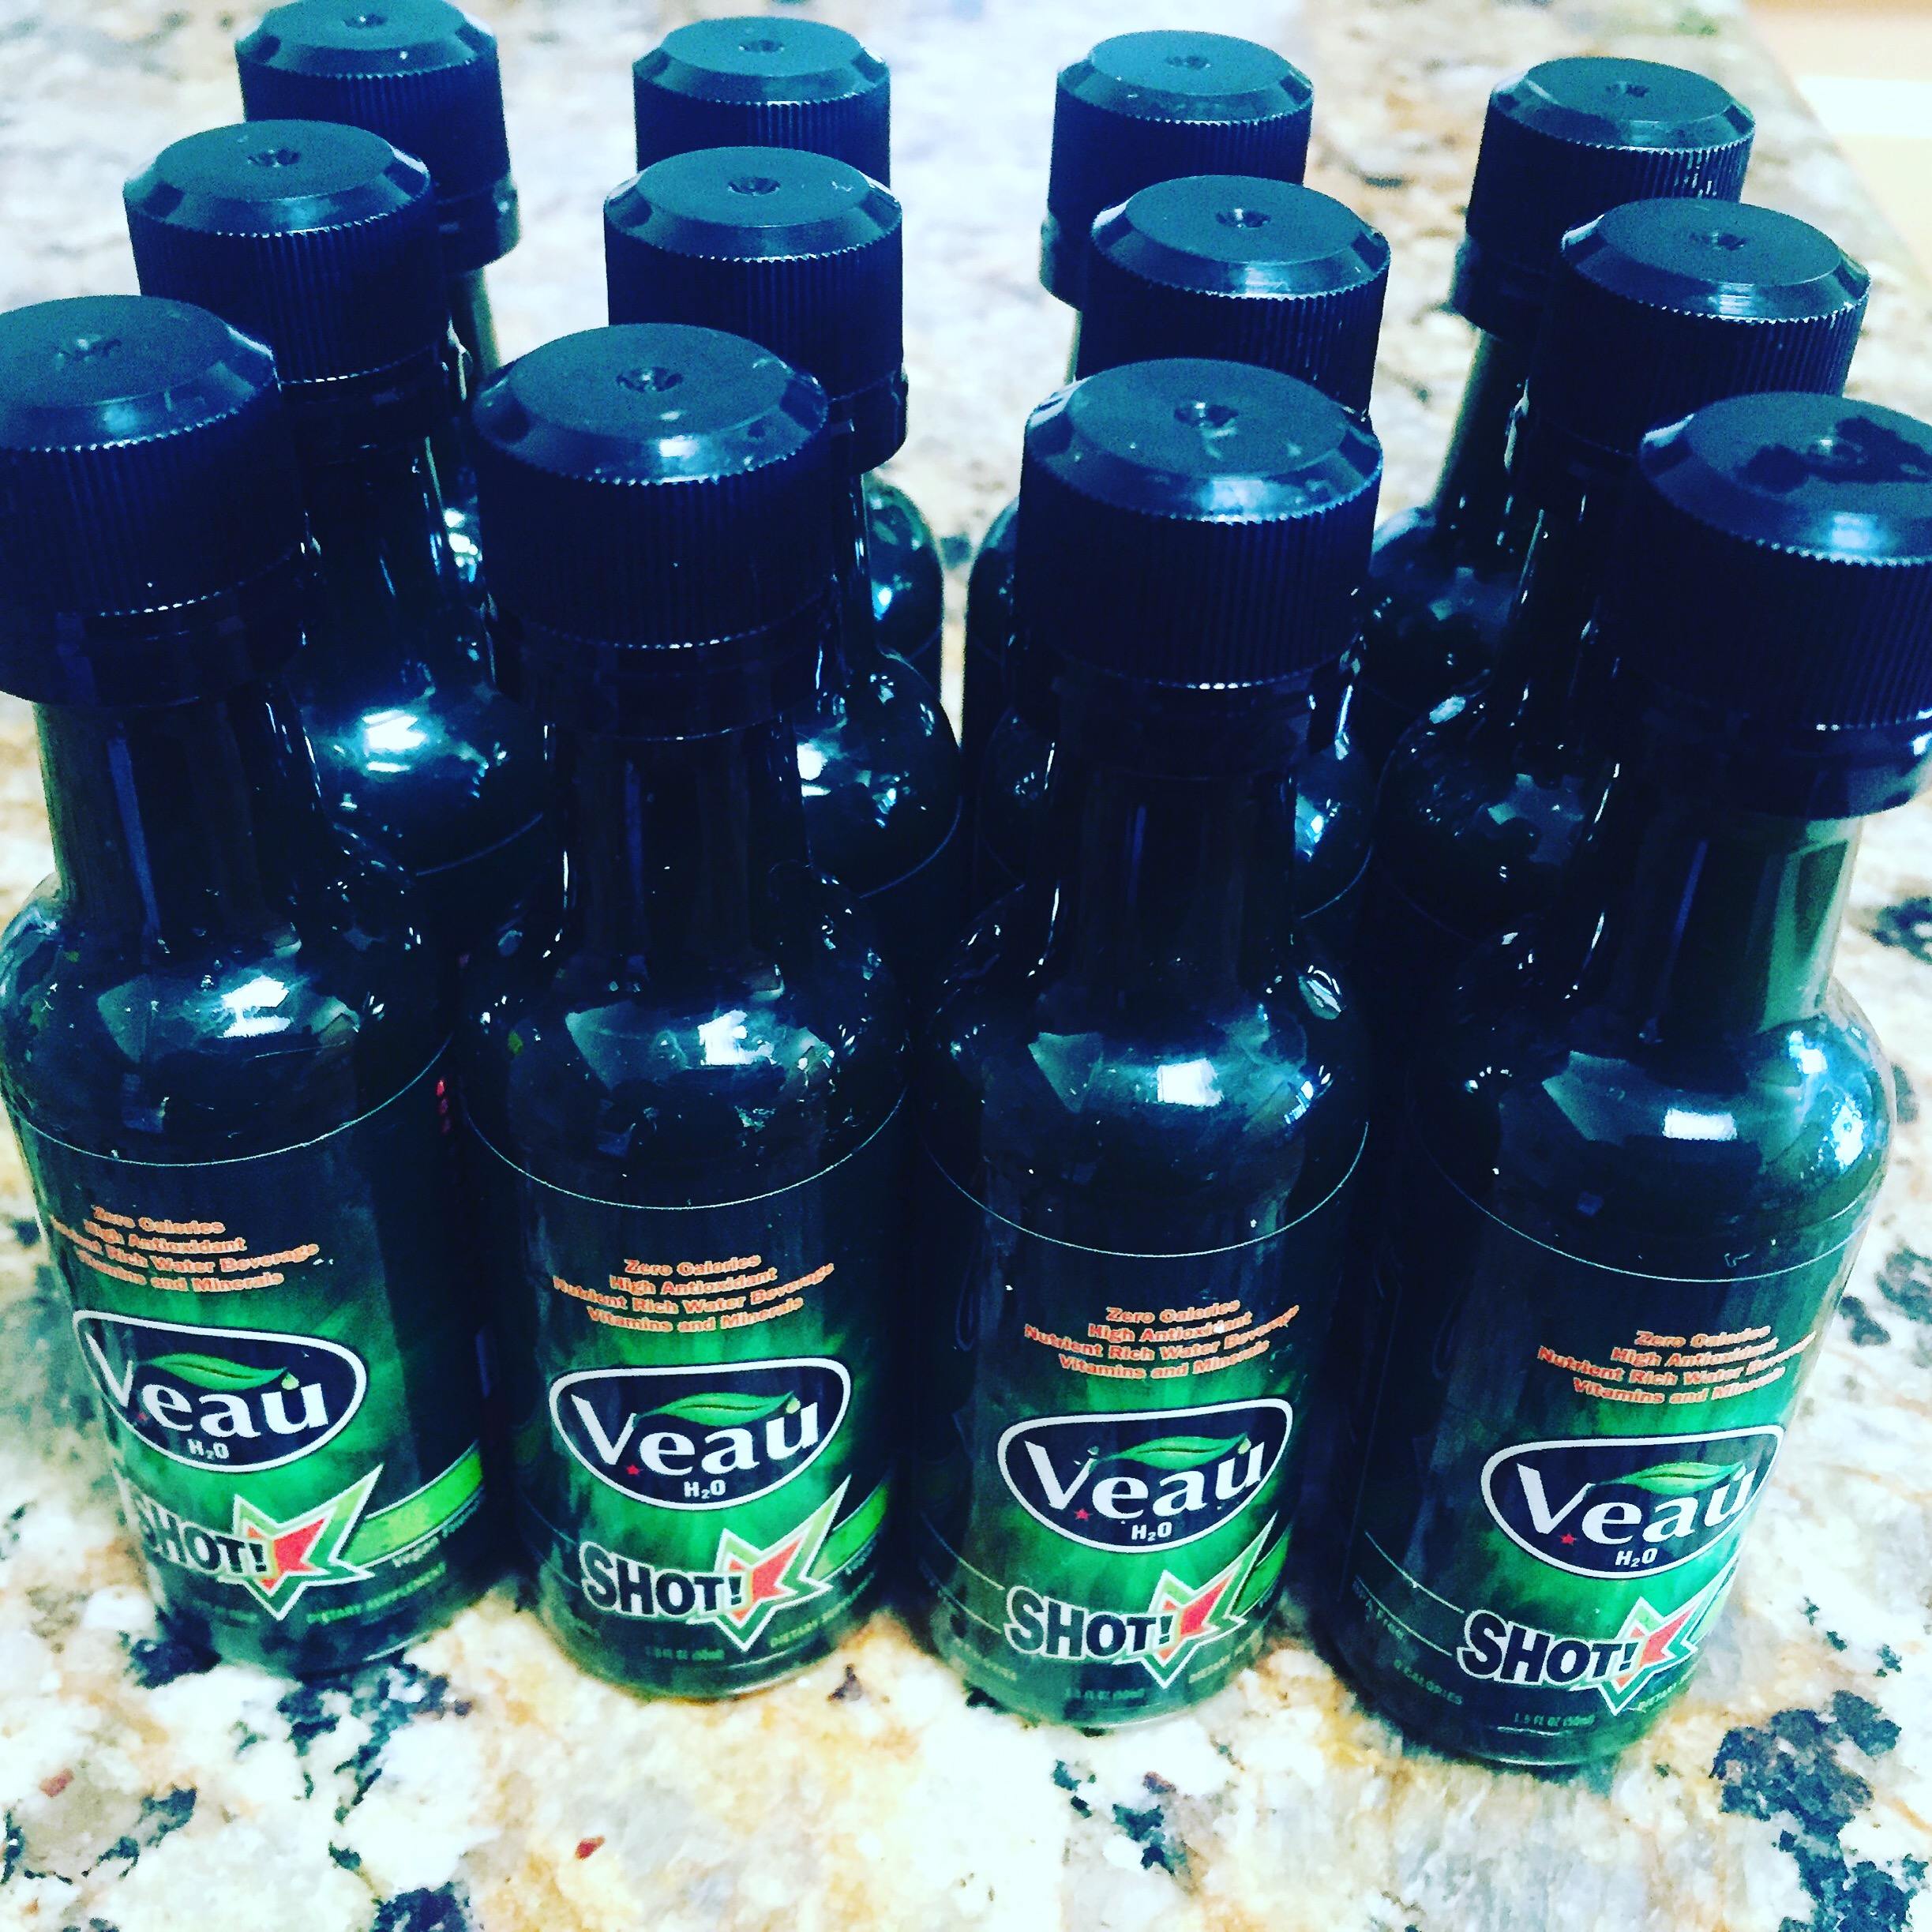 Veau Shot - New Healthy Product